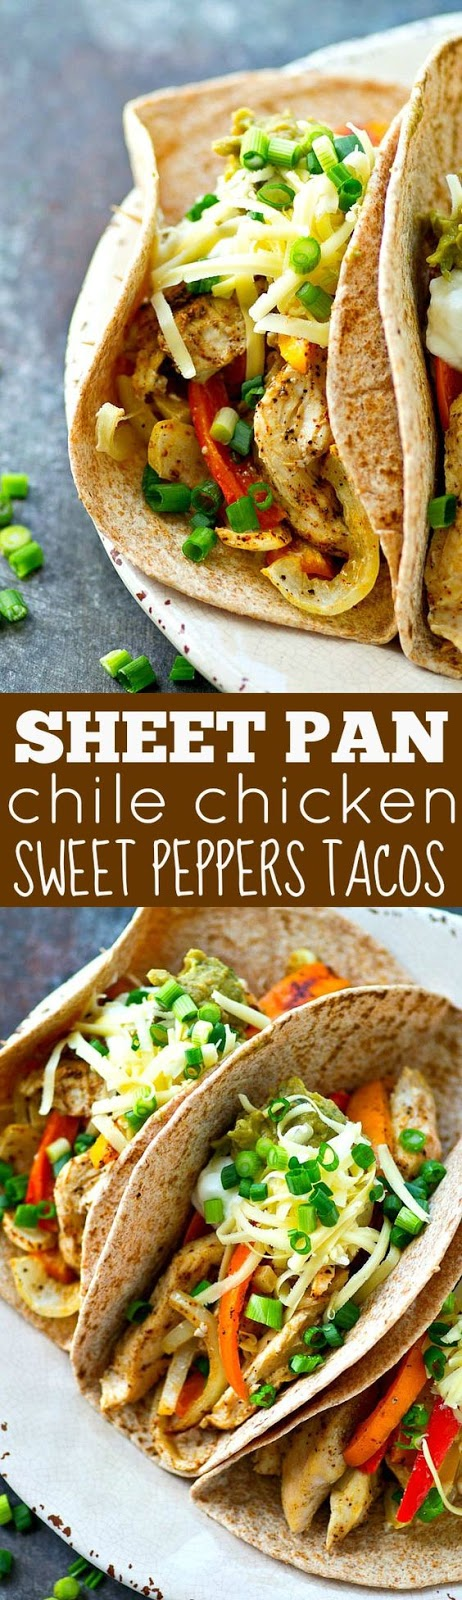 Sheet Pan Chile Chicken Sweet Peppers Tacos